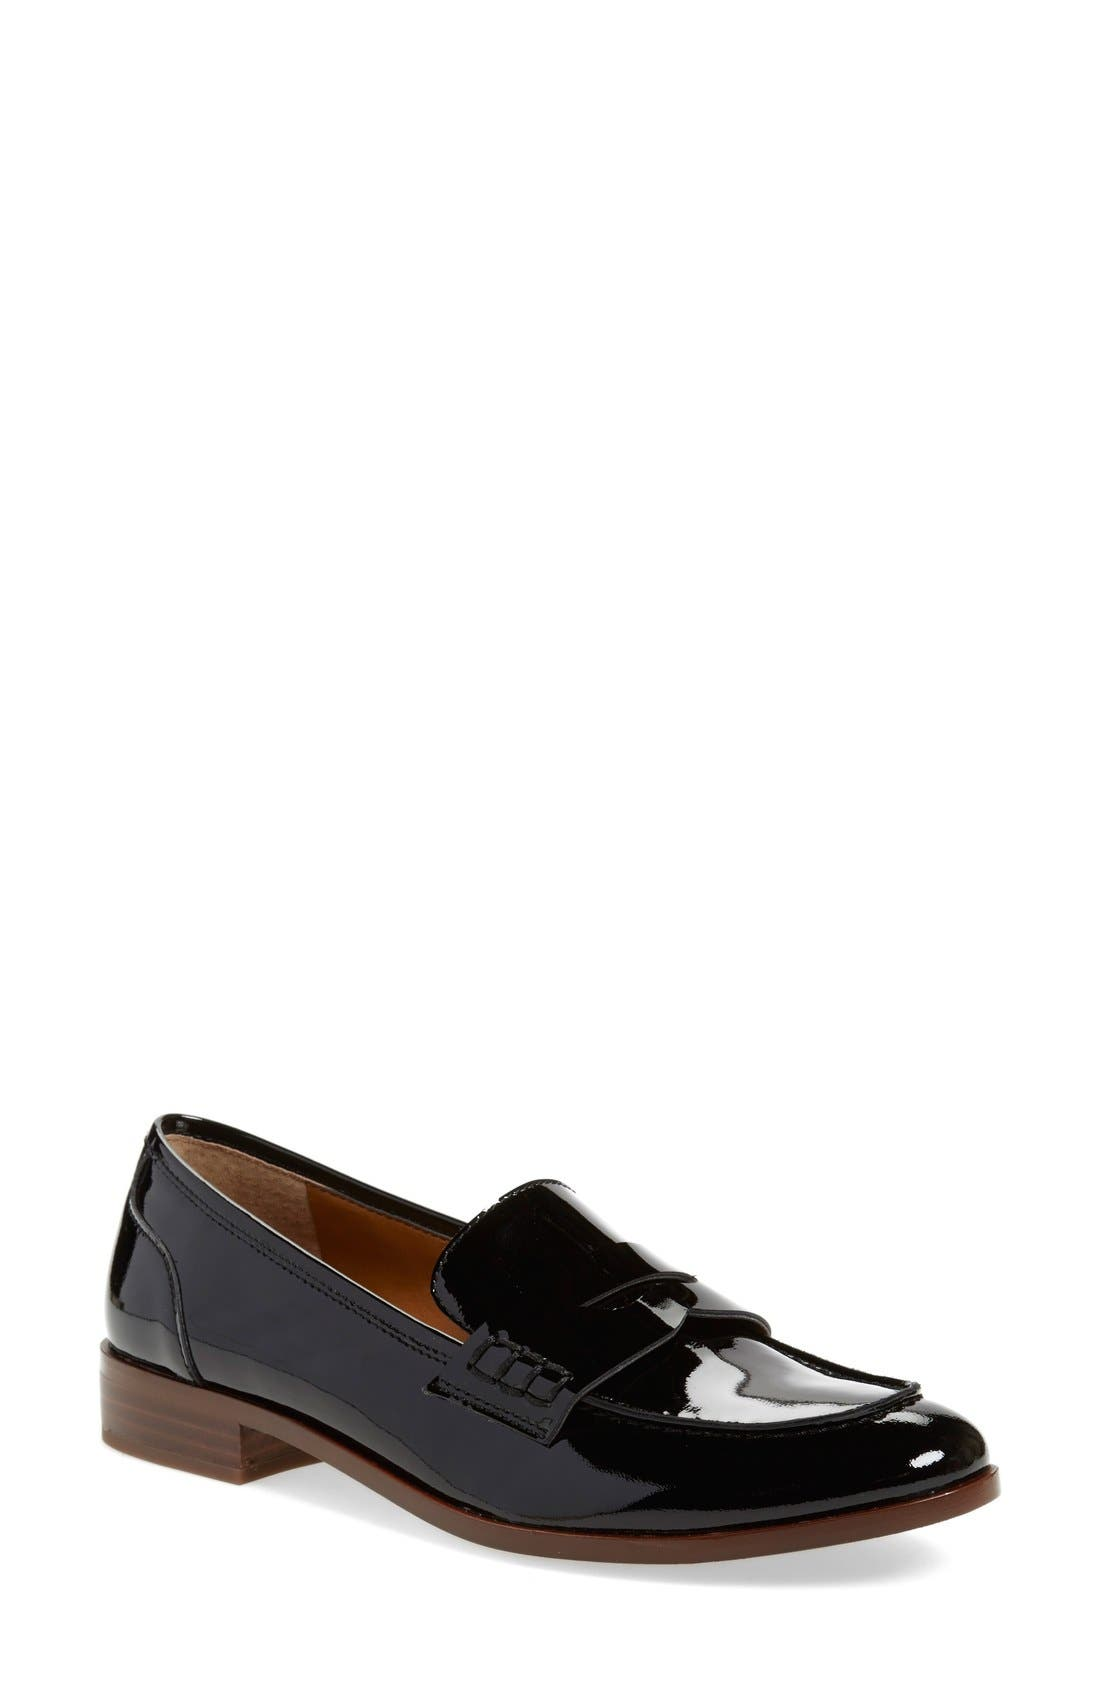 'Jolette' Penny Loafer,                             Main thumbnail 10, color,